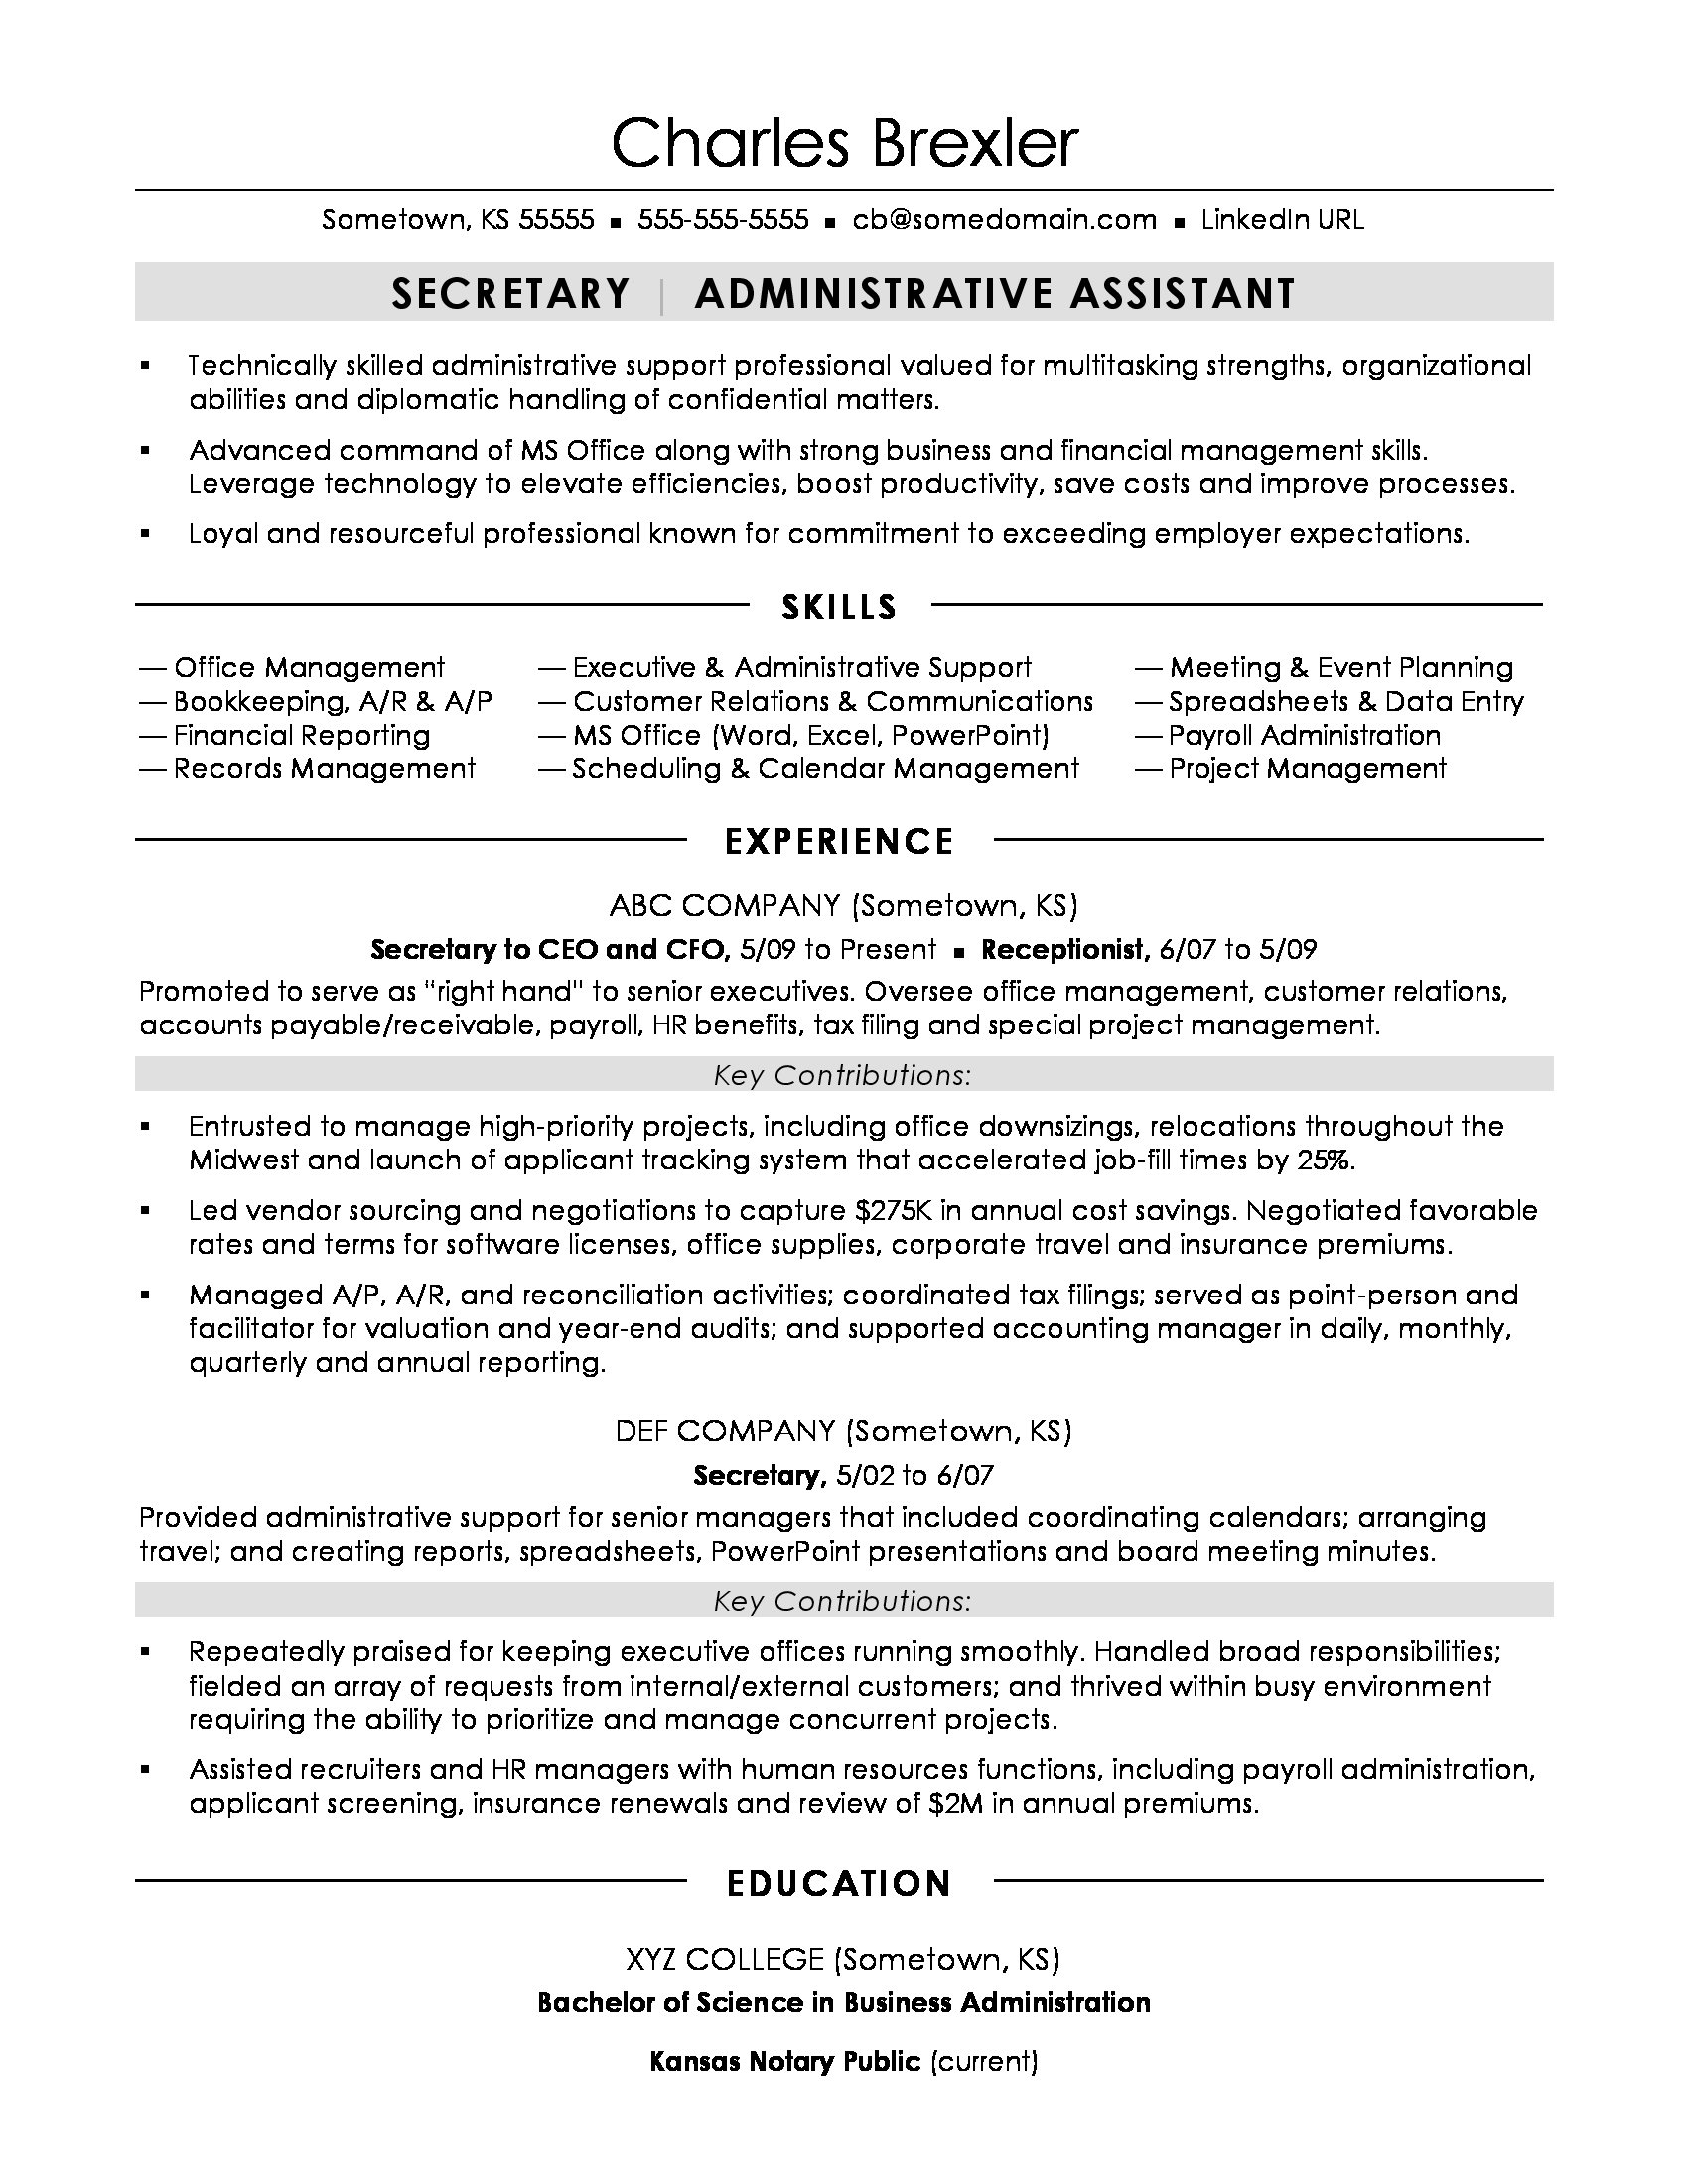 Beautiful Secretary Resume Sample Intended For Secretary Resume Examples